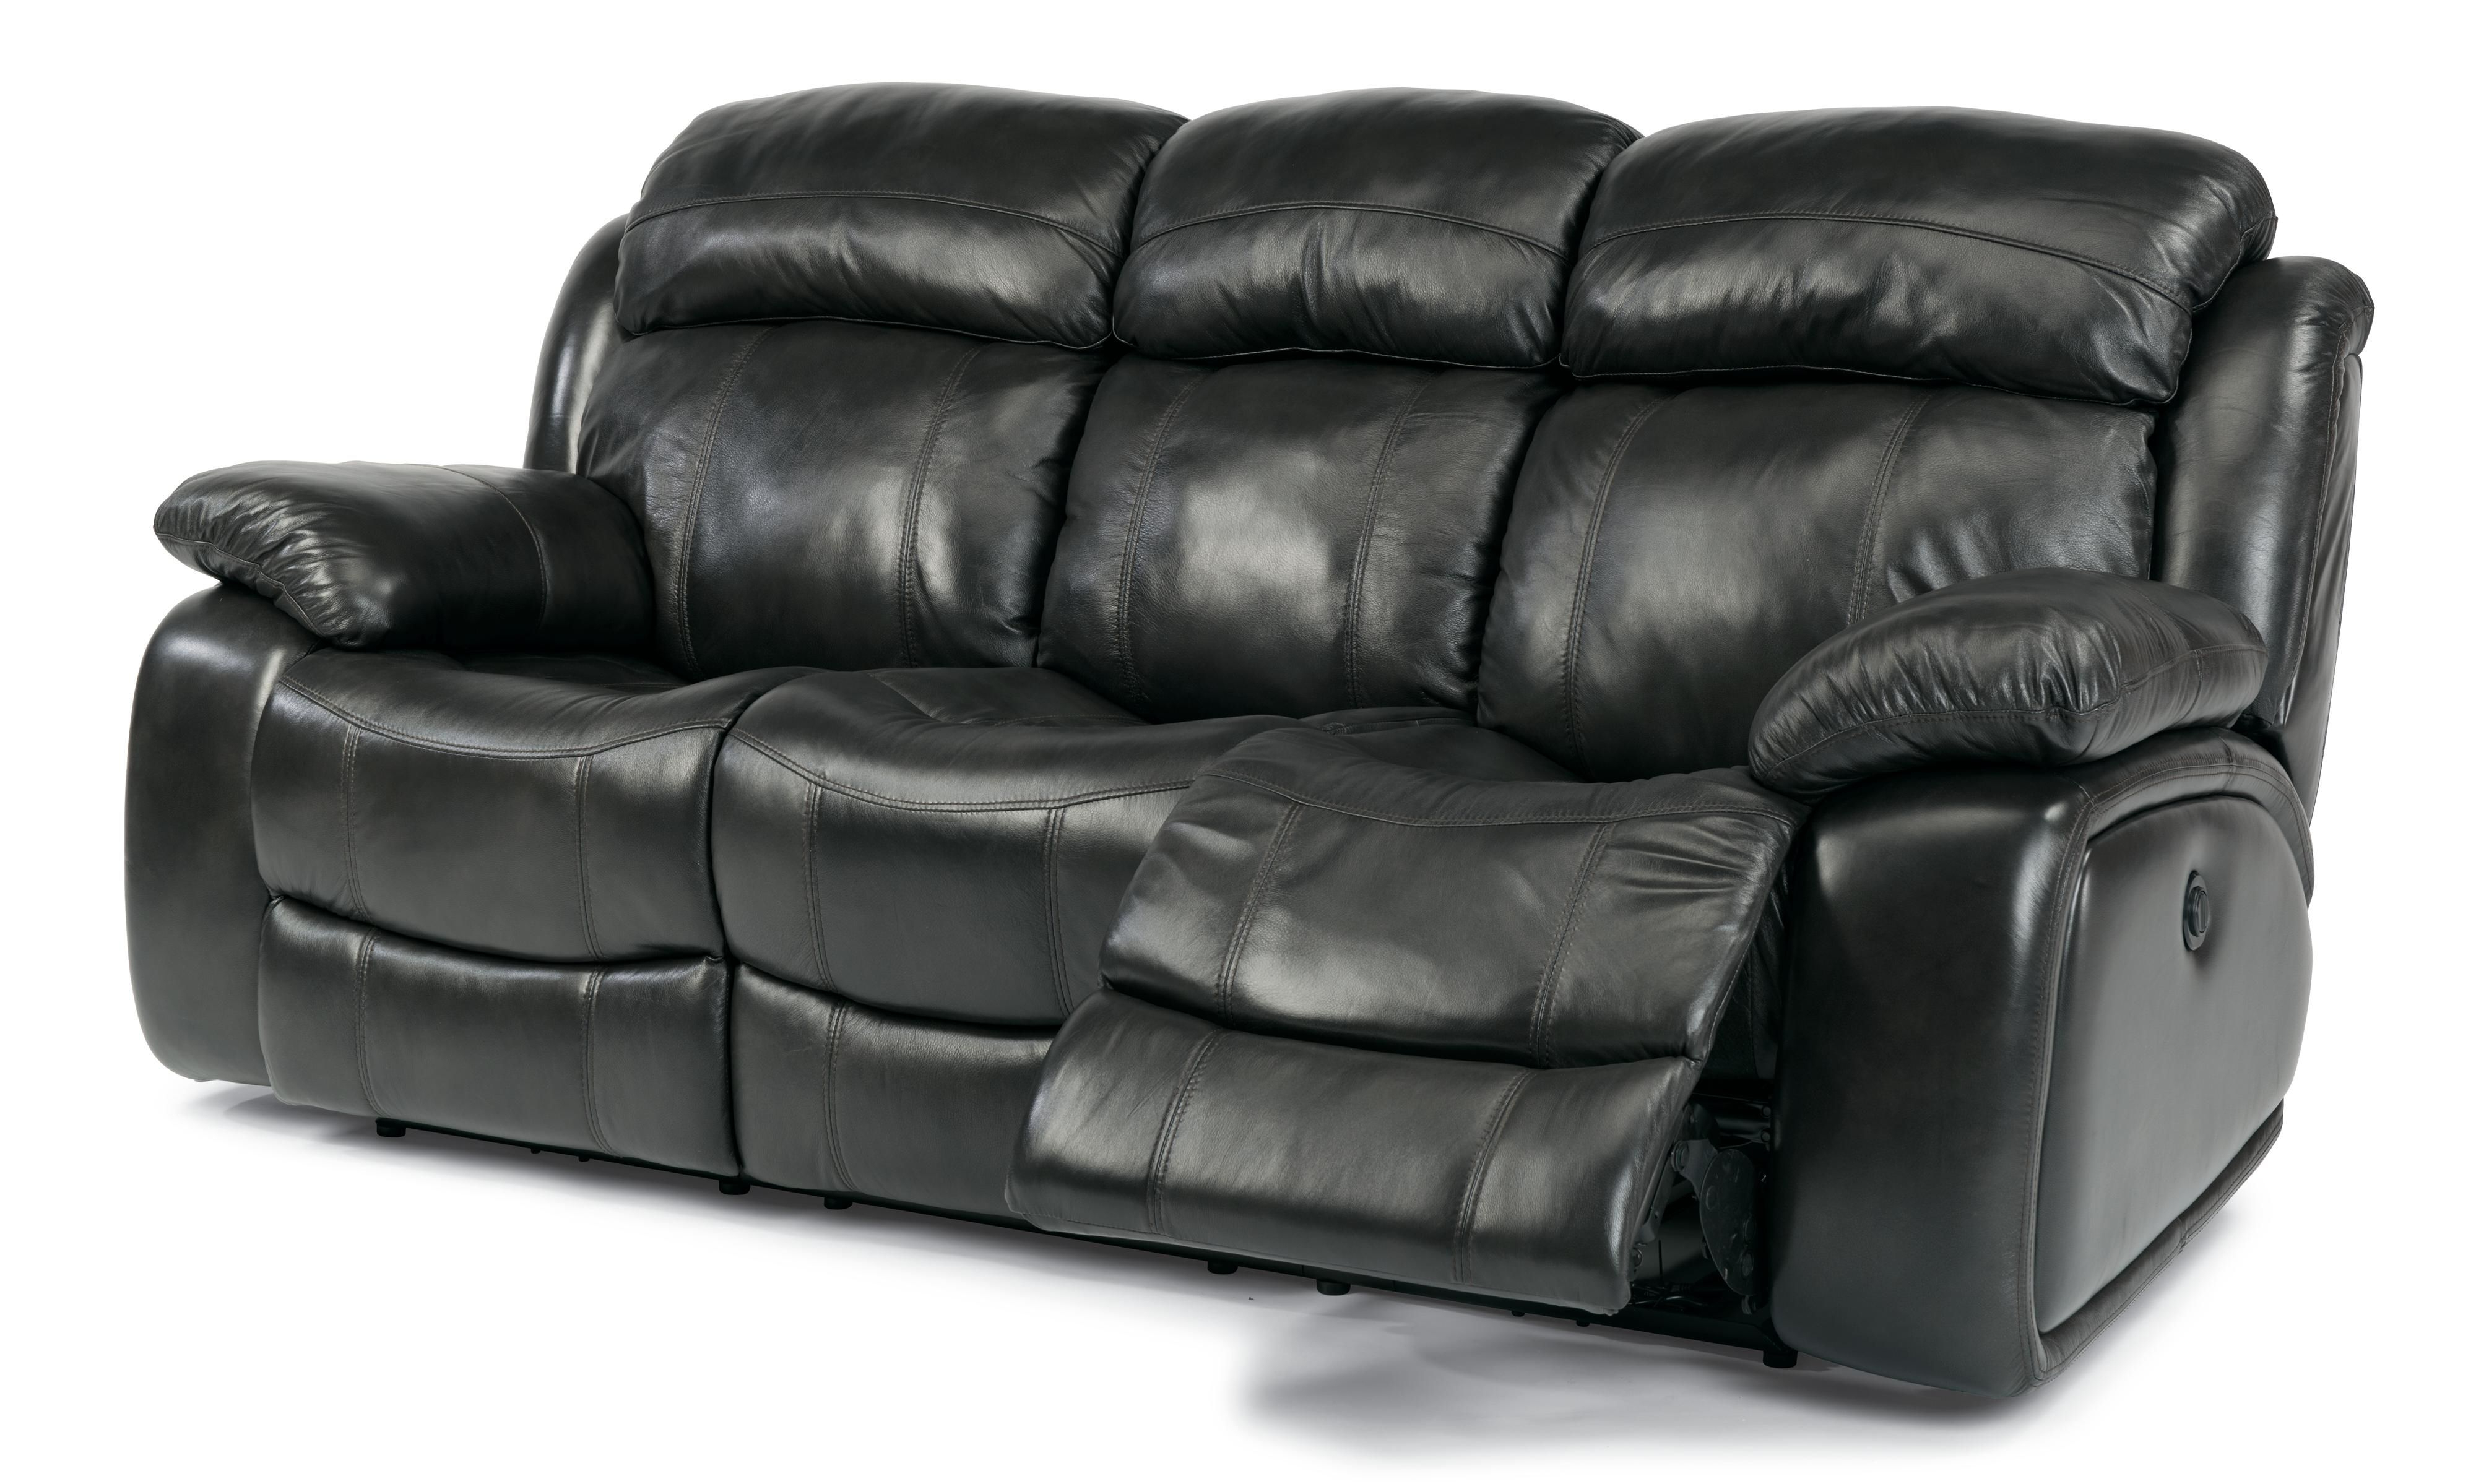 Famous Norwalk Sofa And Chairs In Beauteous Flexsteel Living Room Furniture Or Norwalk Sofa Chairs And (View 15 of 20)